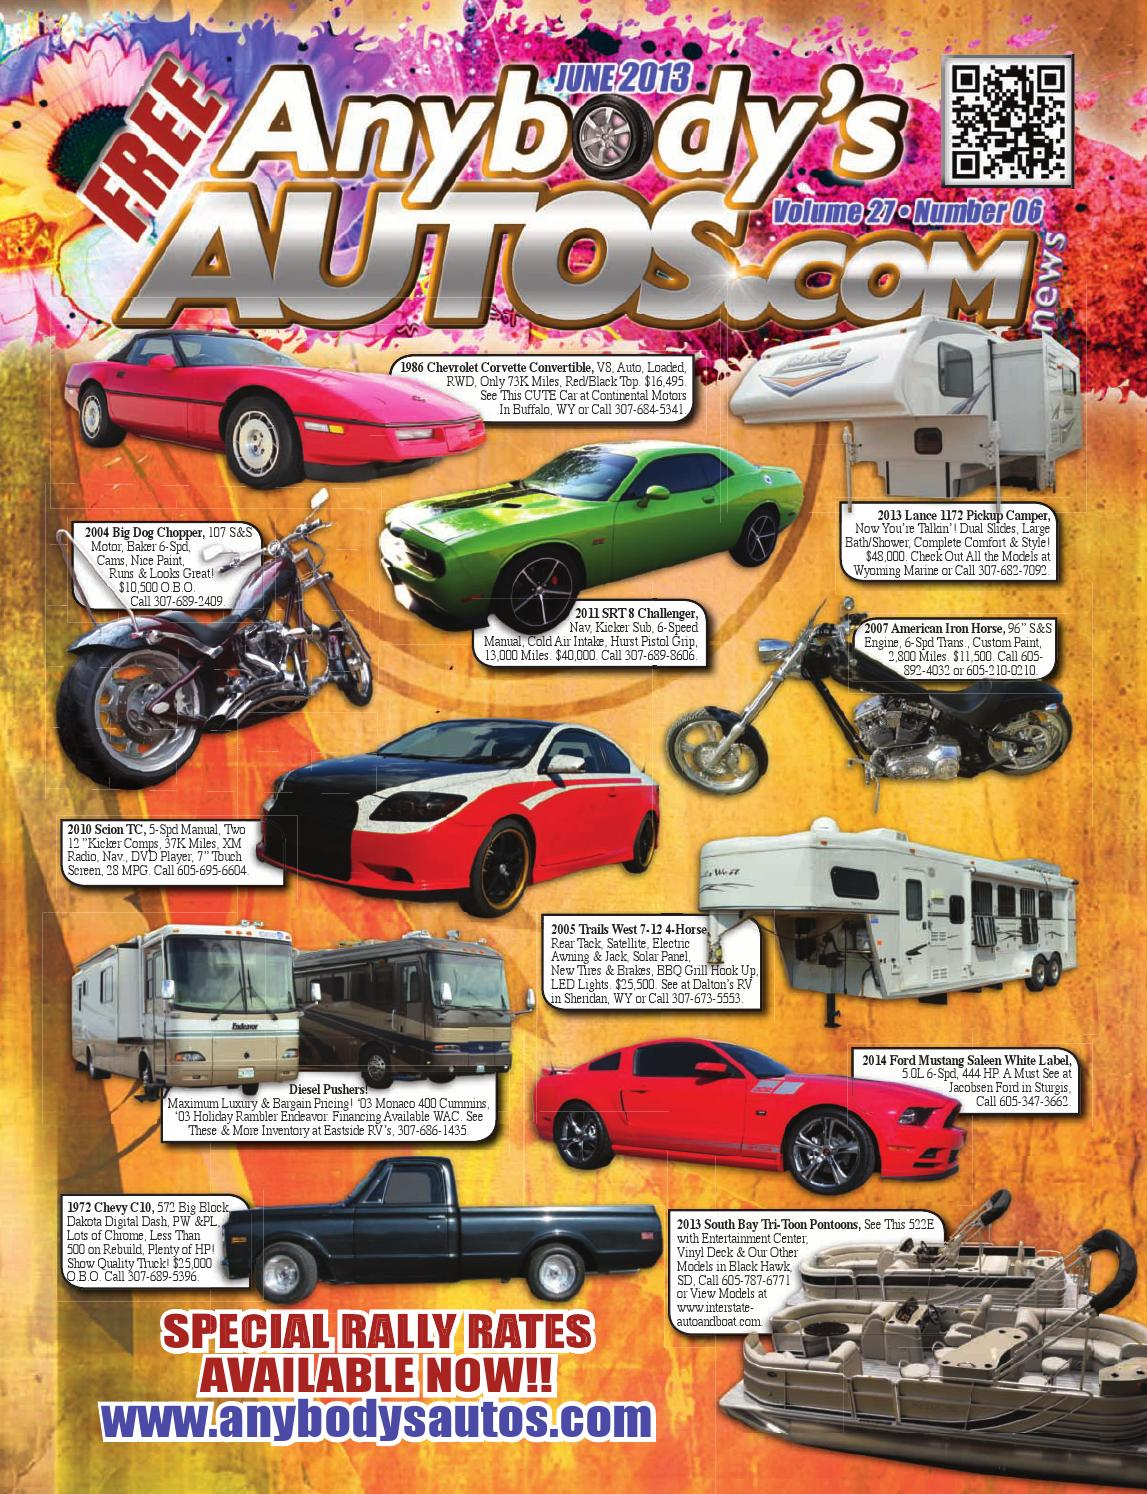 e5ff391f85 June 2013Anybodys Autos News Magazine by Anybodys Autos - issuu